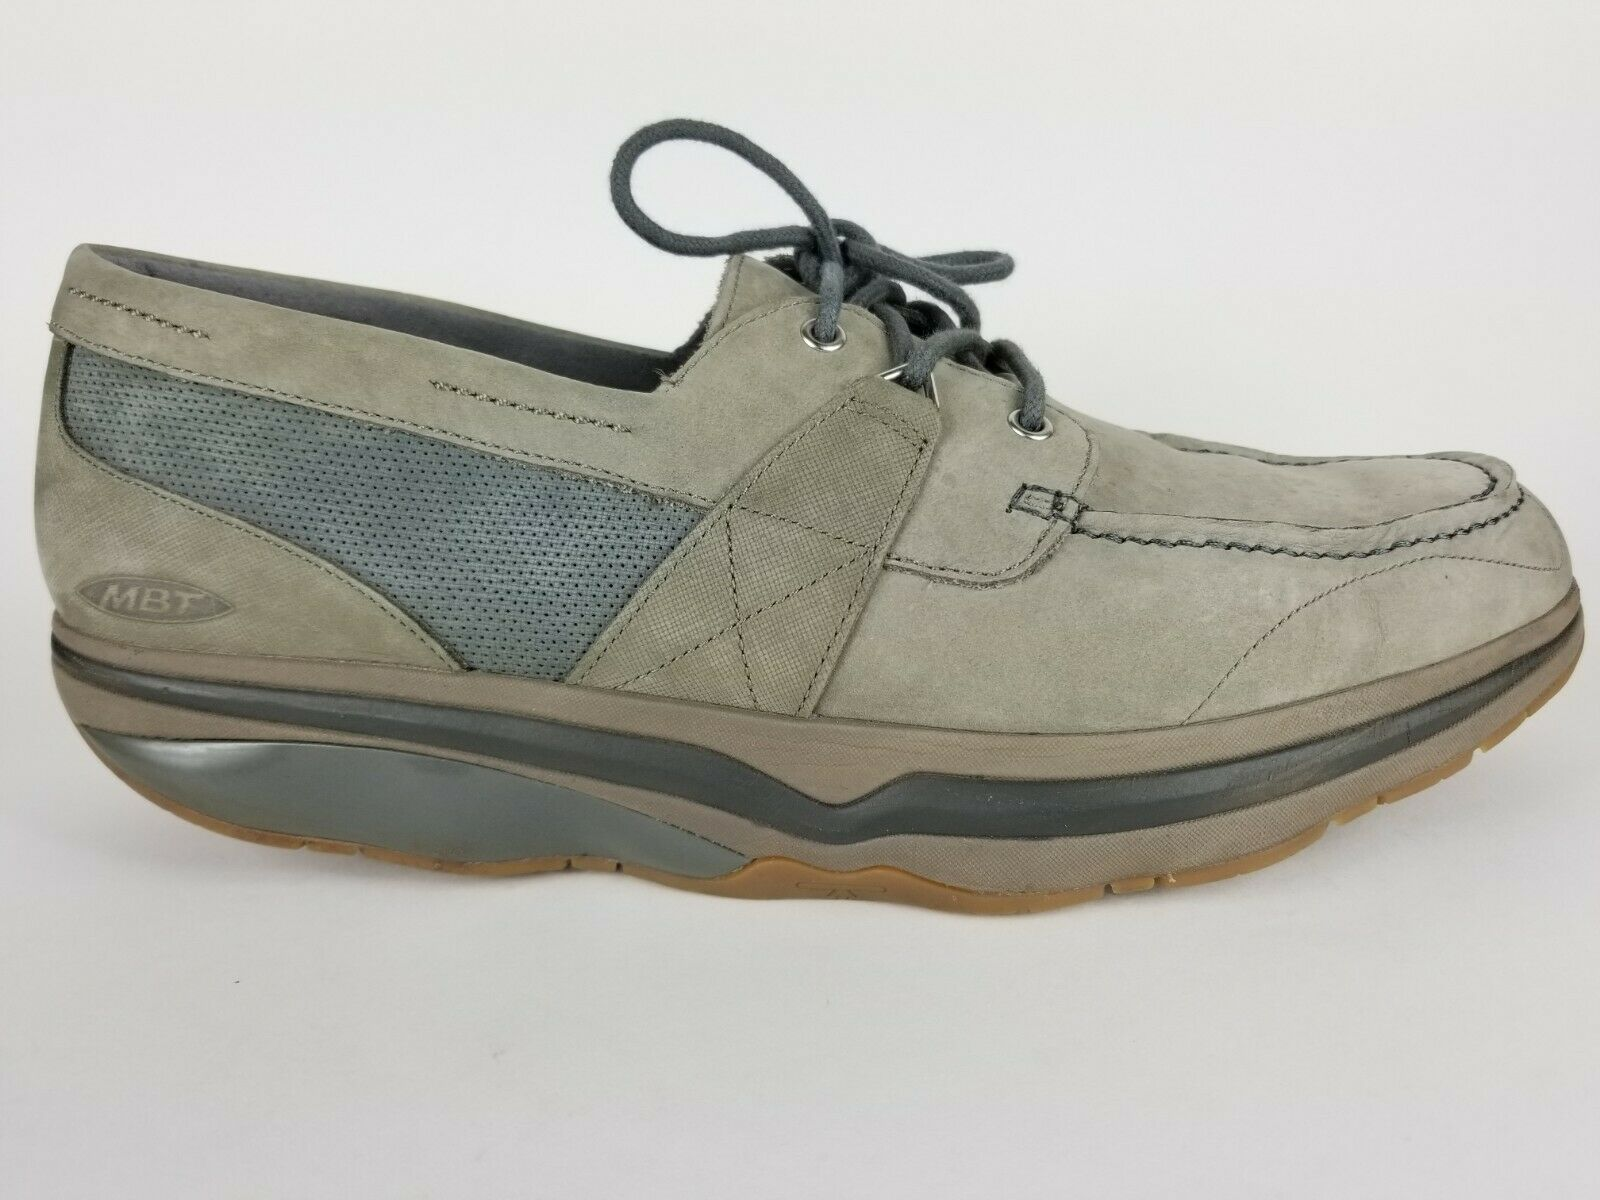 MBT Walking scarpe grigio Leather Leather Leather Dynamic Lace Up Oxford Moc Toe Casual Uomo 12-12.5 a76ee5